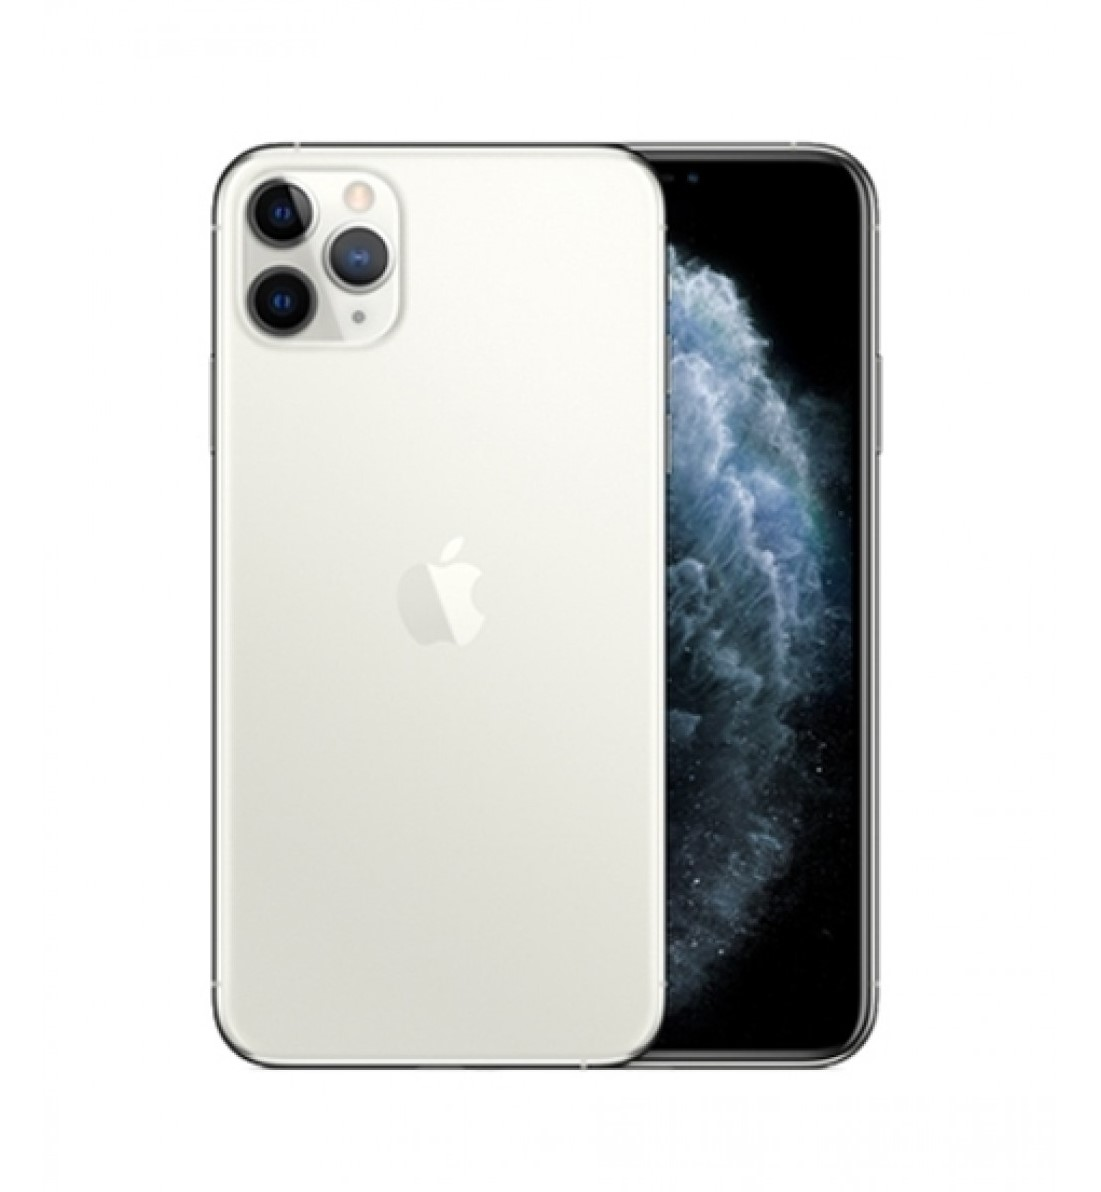 iPhone 11 Pro Full Specifications and Price in Pakistan